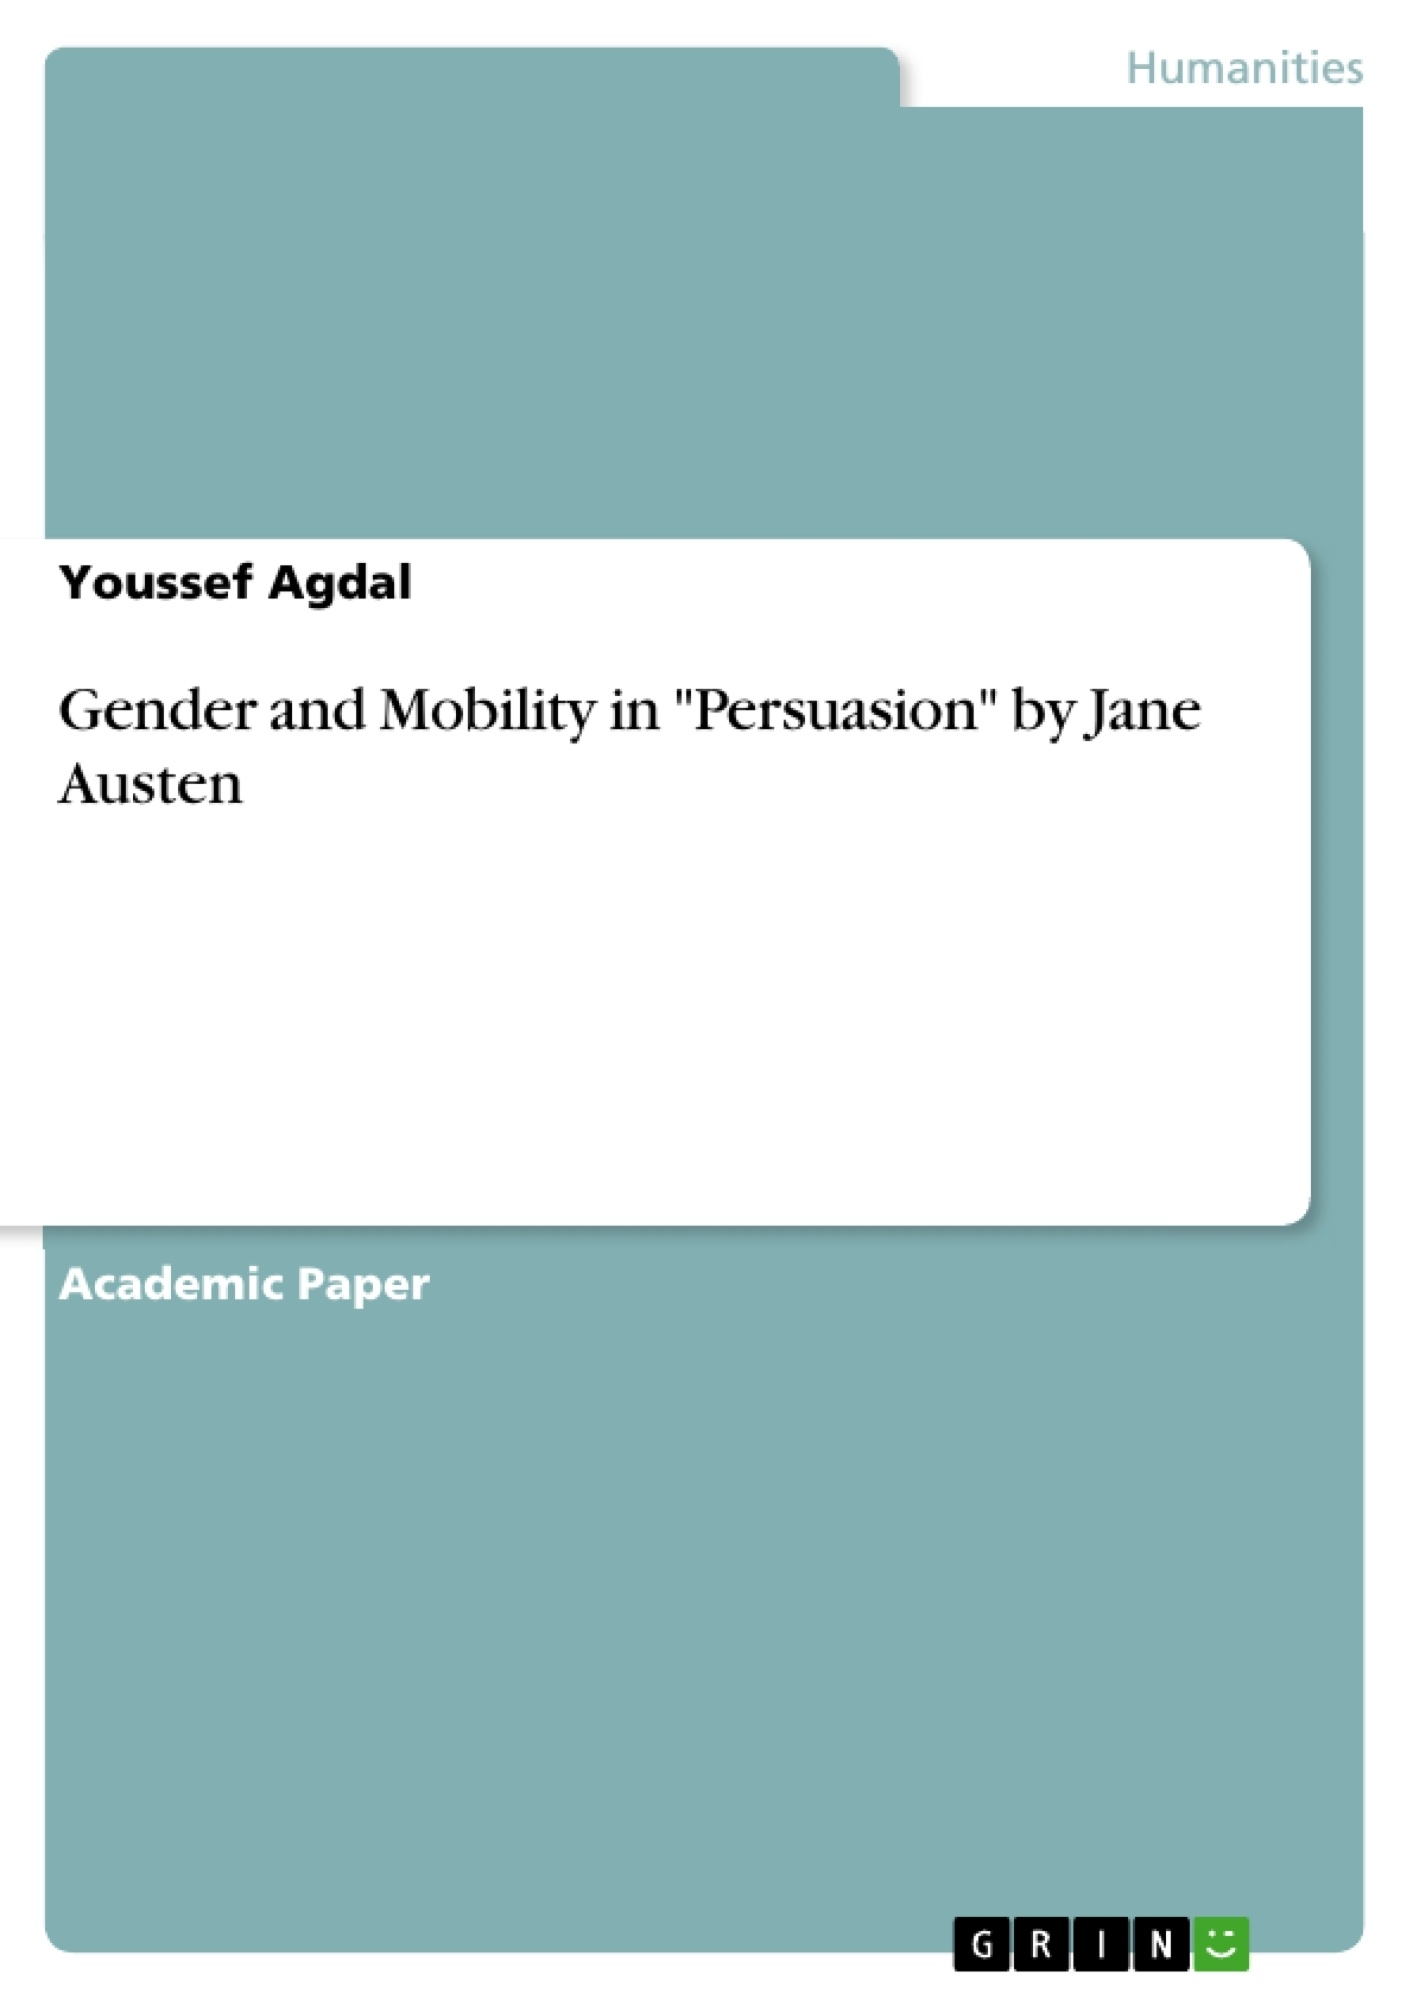 Jane Austen Ph.D. Thesis Topic - Write an MBA Dissertation about Jane Austen Thesis